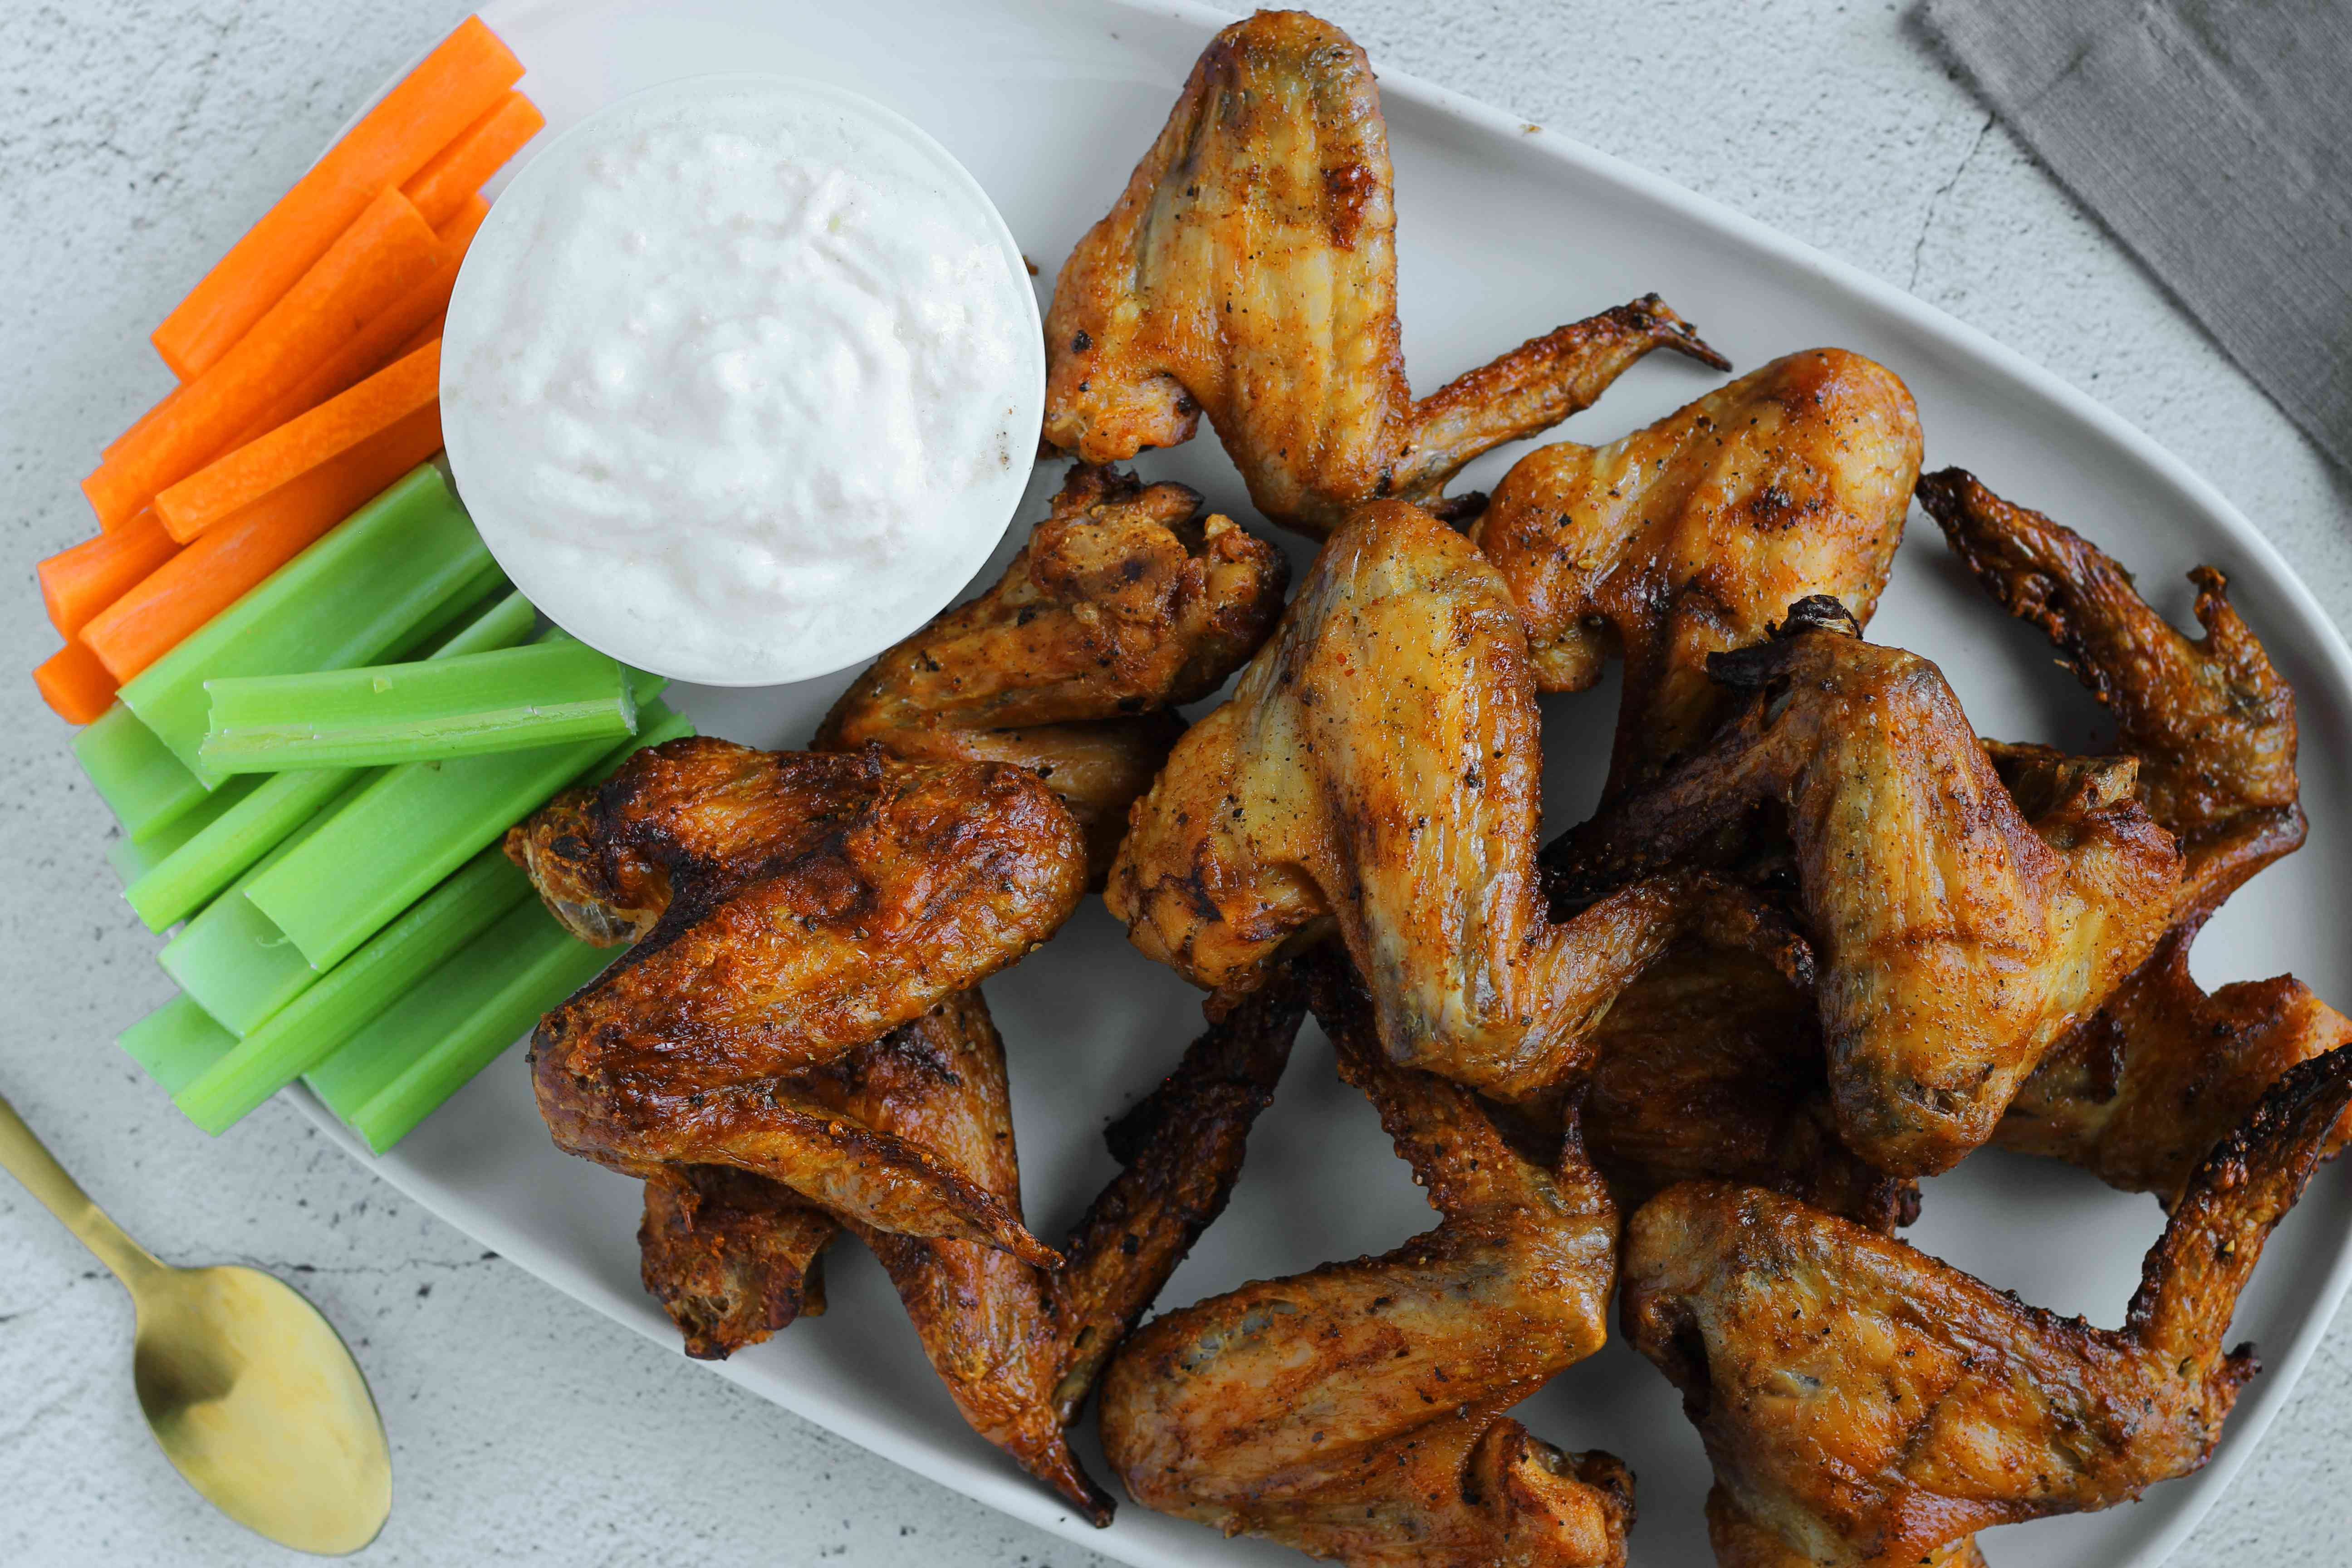 Salt and vinegar wings with dip, carrots and celery